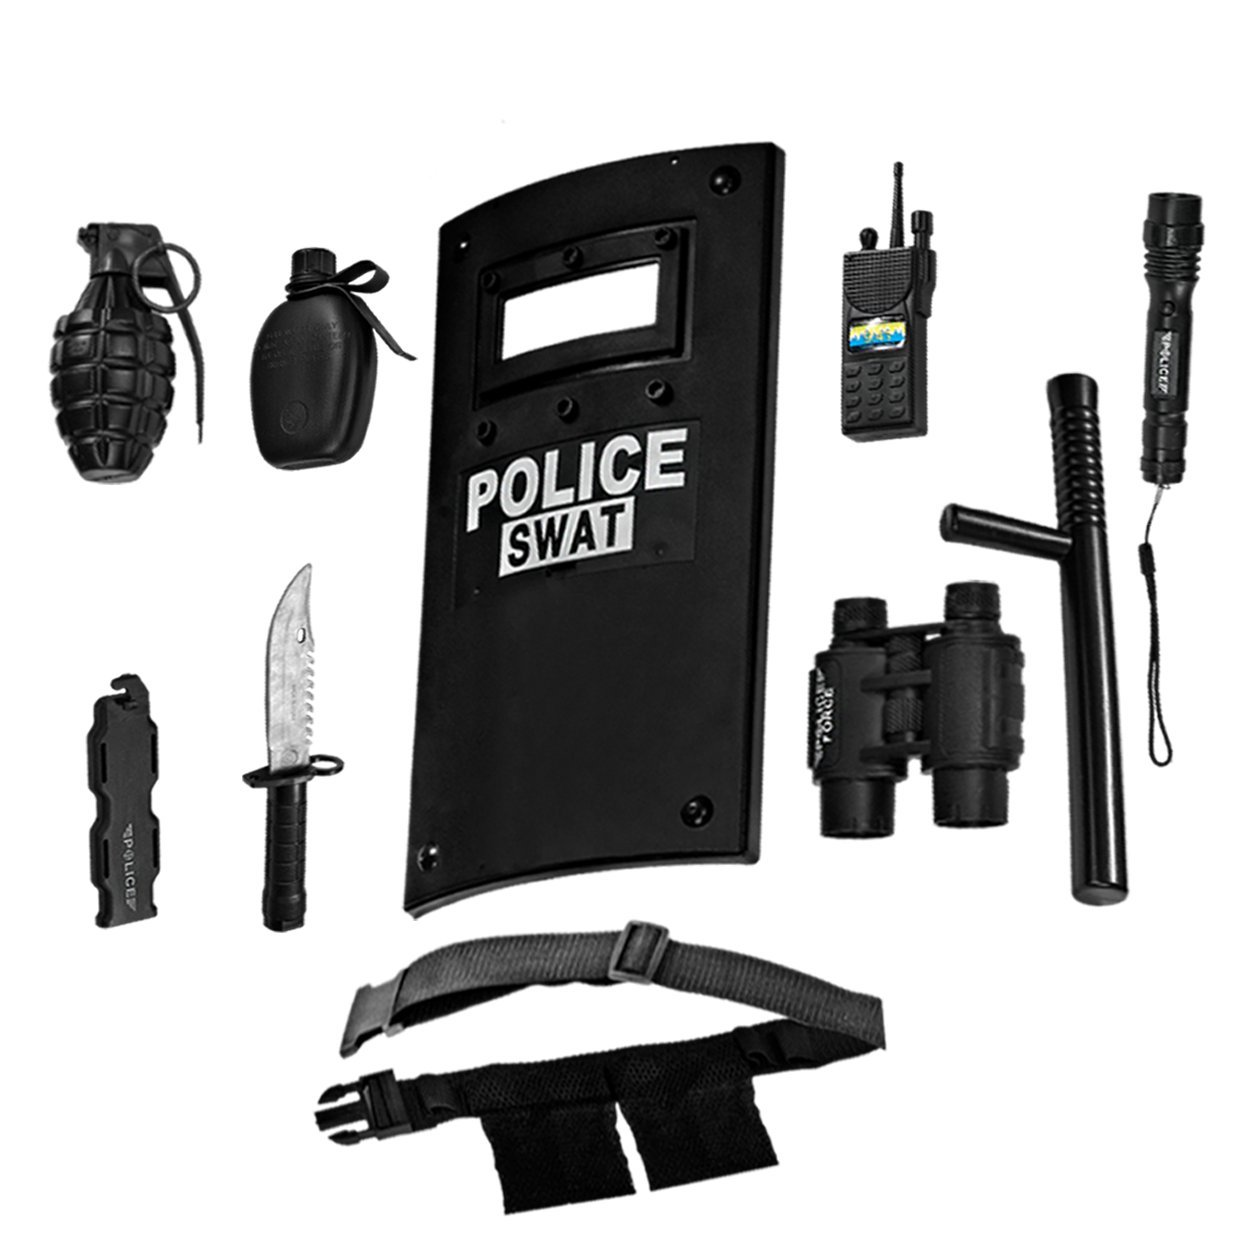 Ultimate All-in-One Police Officer Role Play Set for Kids - Includes SWAT Shield, Adjustable Belt, Flashlight & More, Durable Plastic Construction, Police Force Halloween Uniform Accessories for Kids by Dress Up America